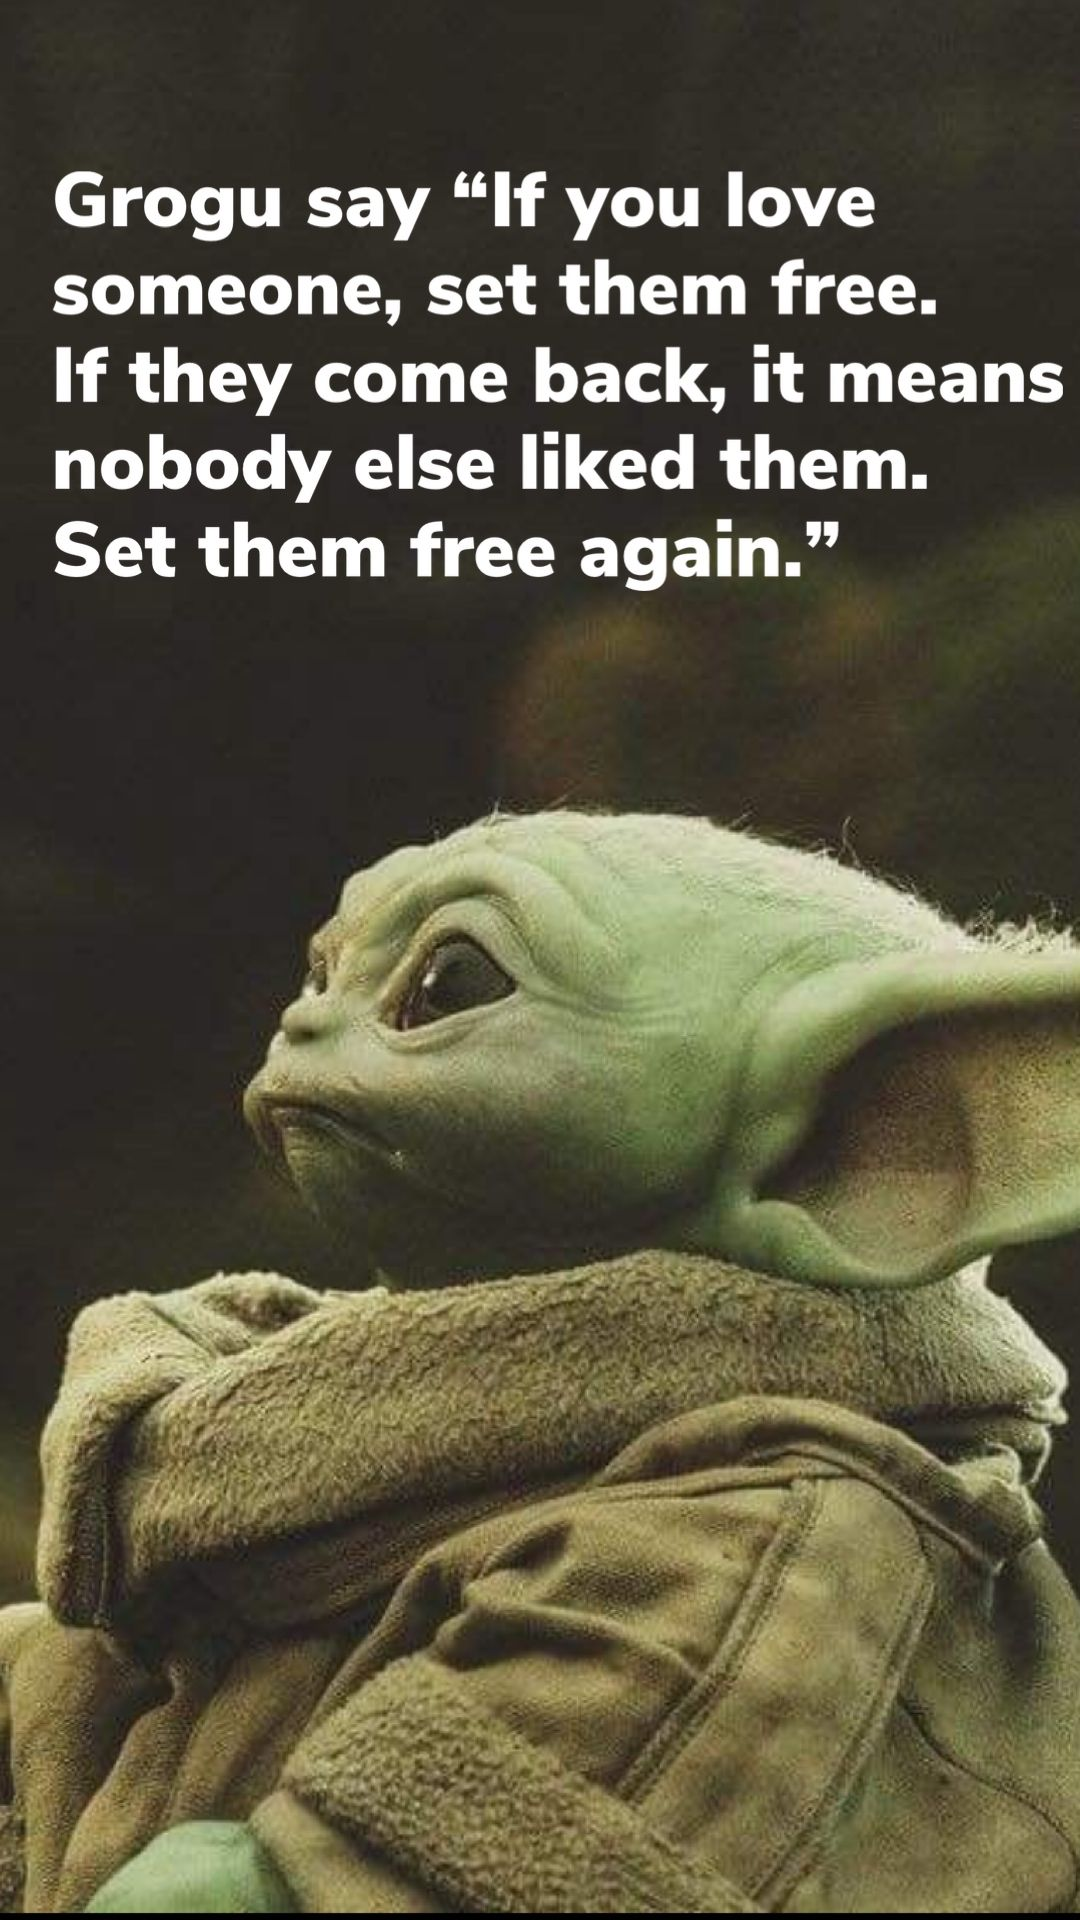 Pin By Jacqui Bell On Geek Pics For The Geek In Us All Yoda Funny Yoda Meme Funny Memes